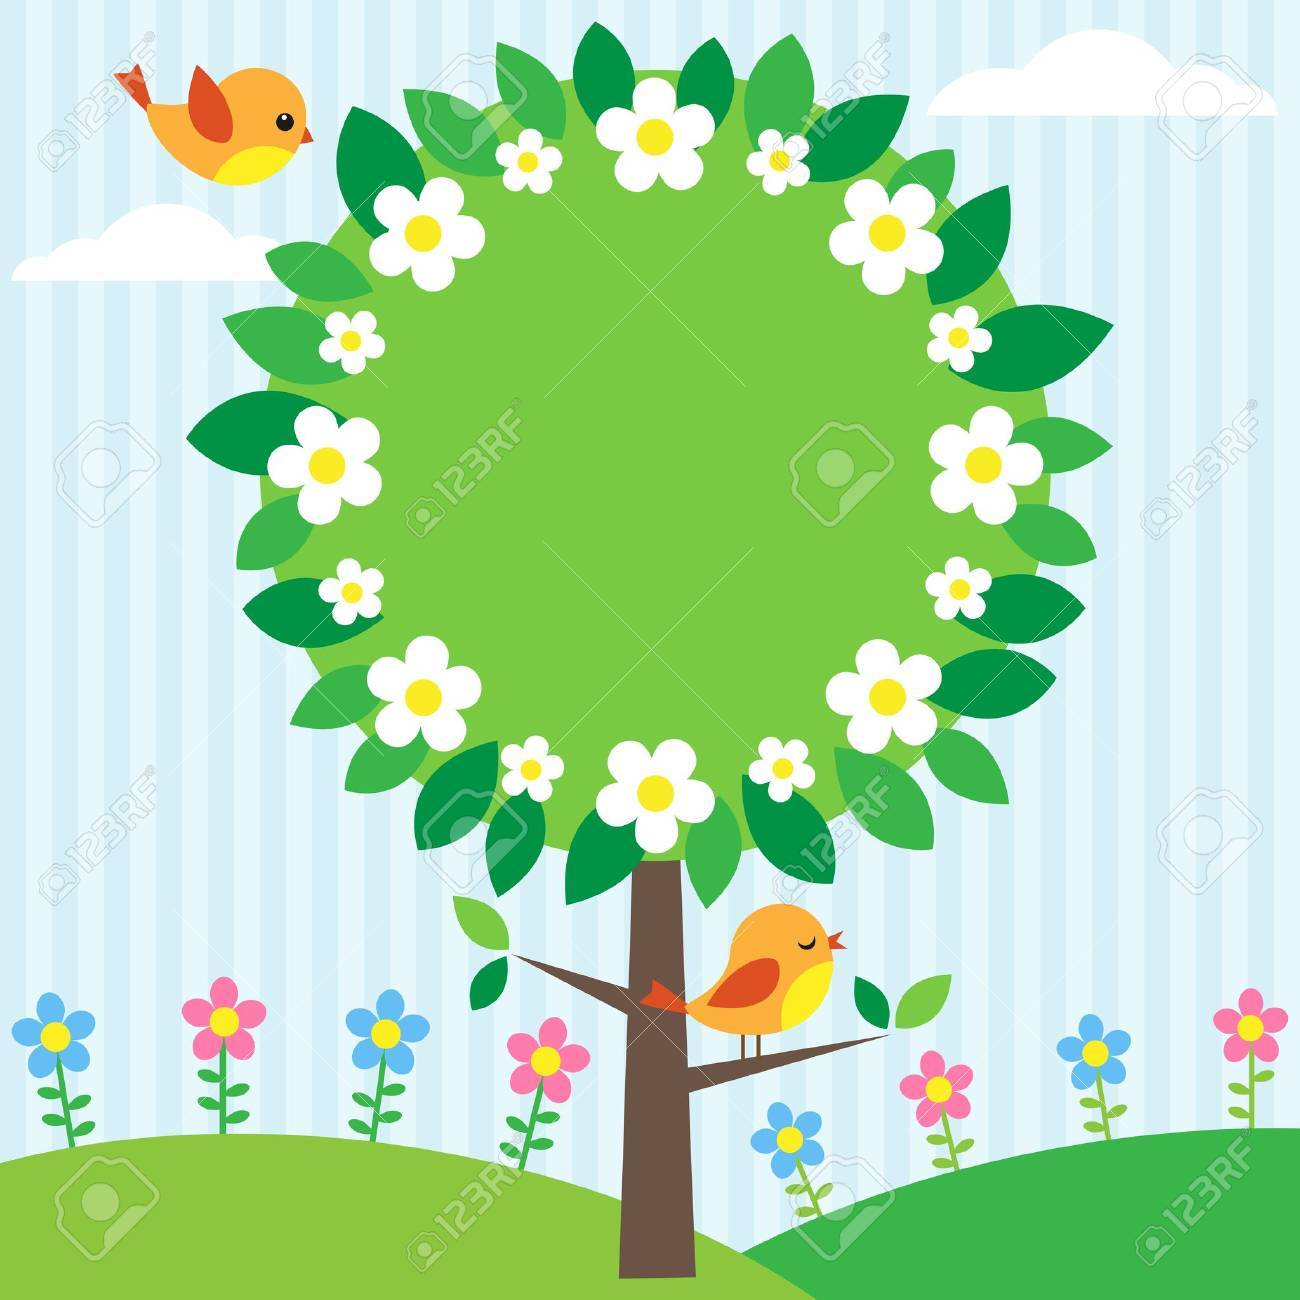 Background with birds, flowers and blooming tree Stock Vector - 12875716